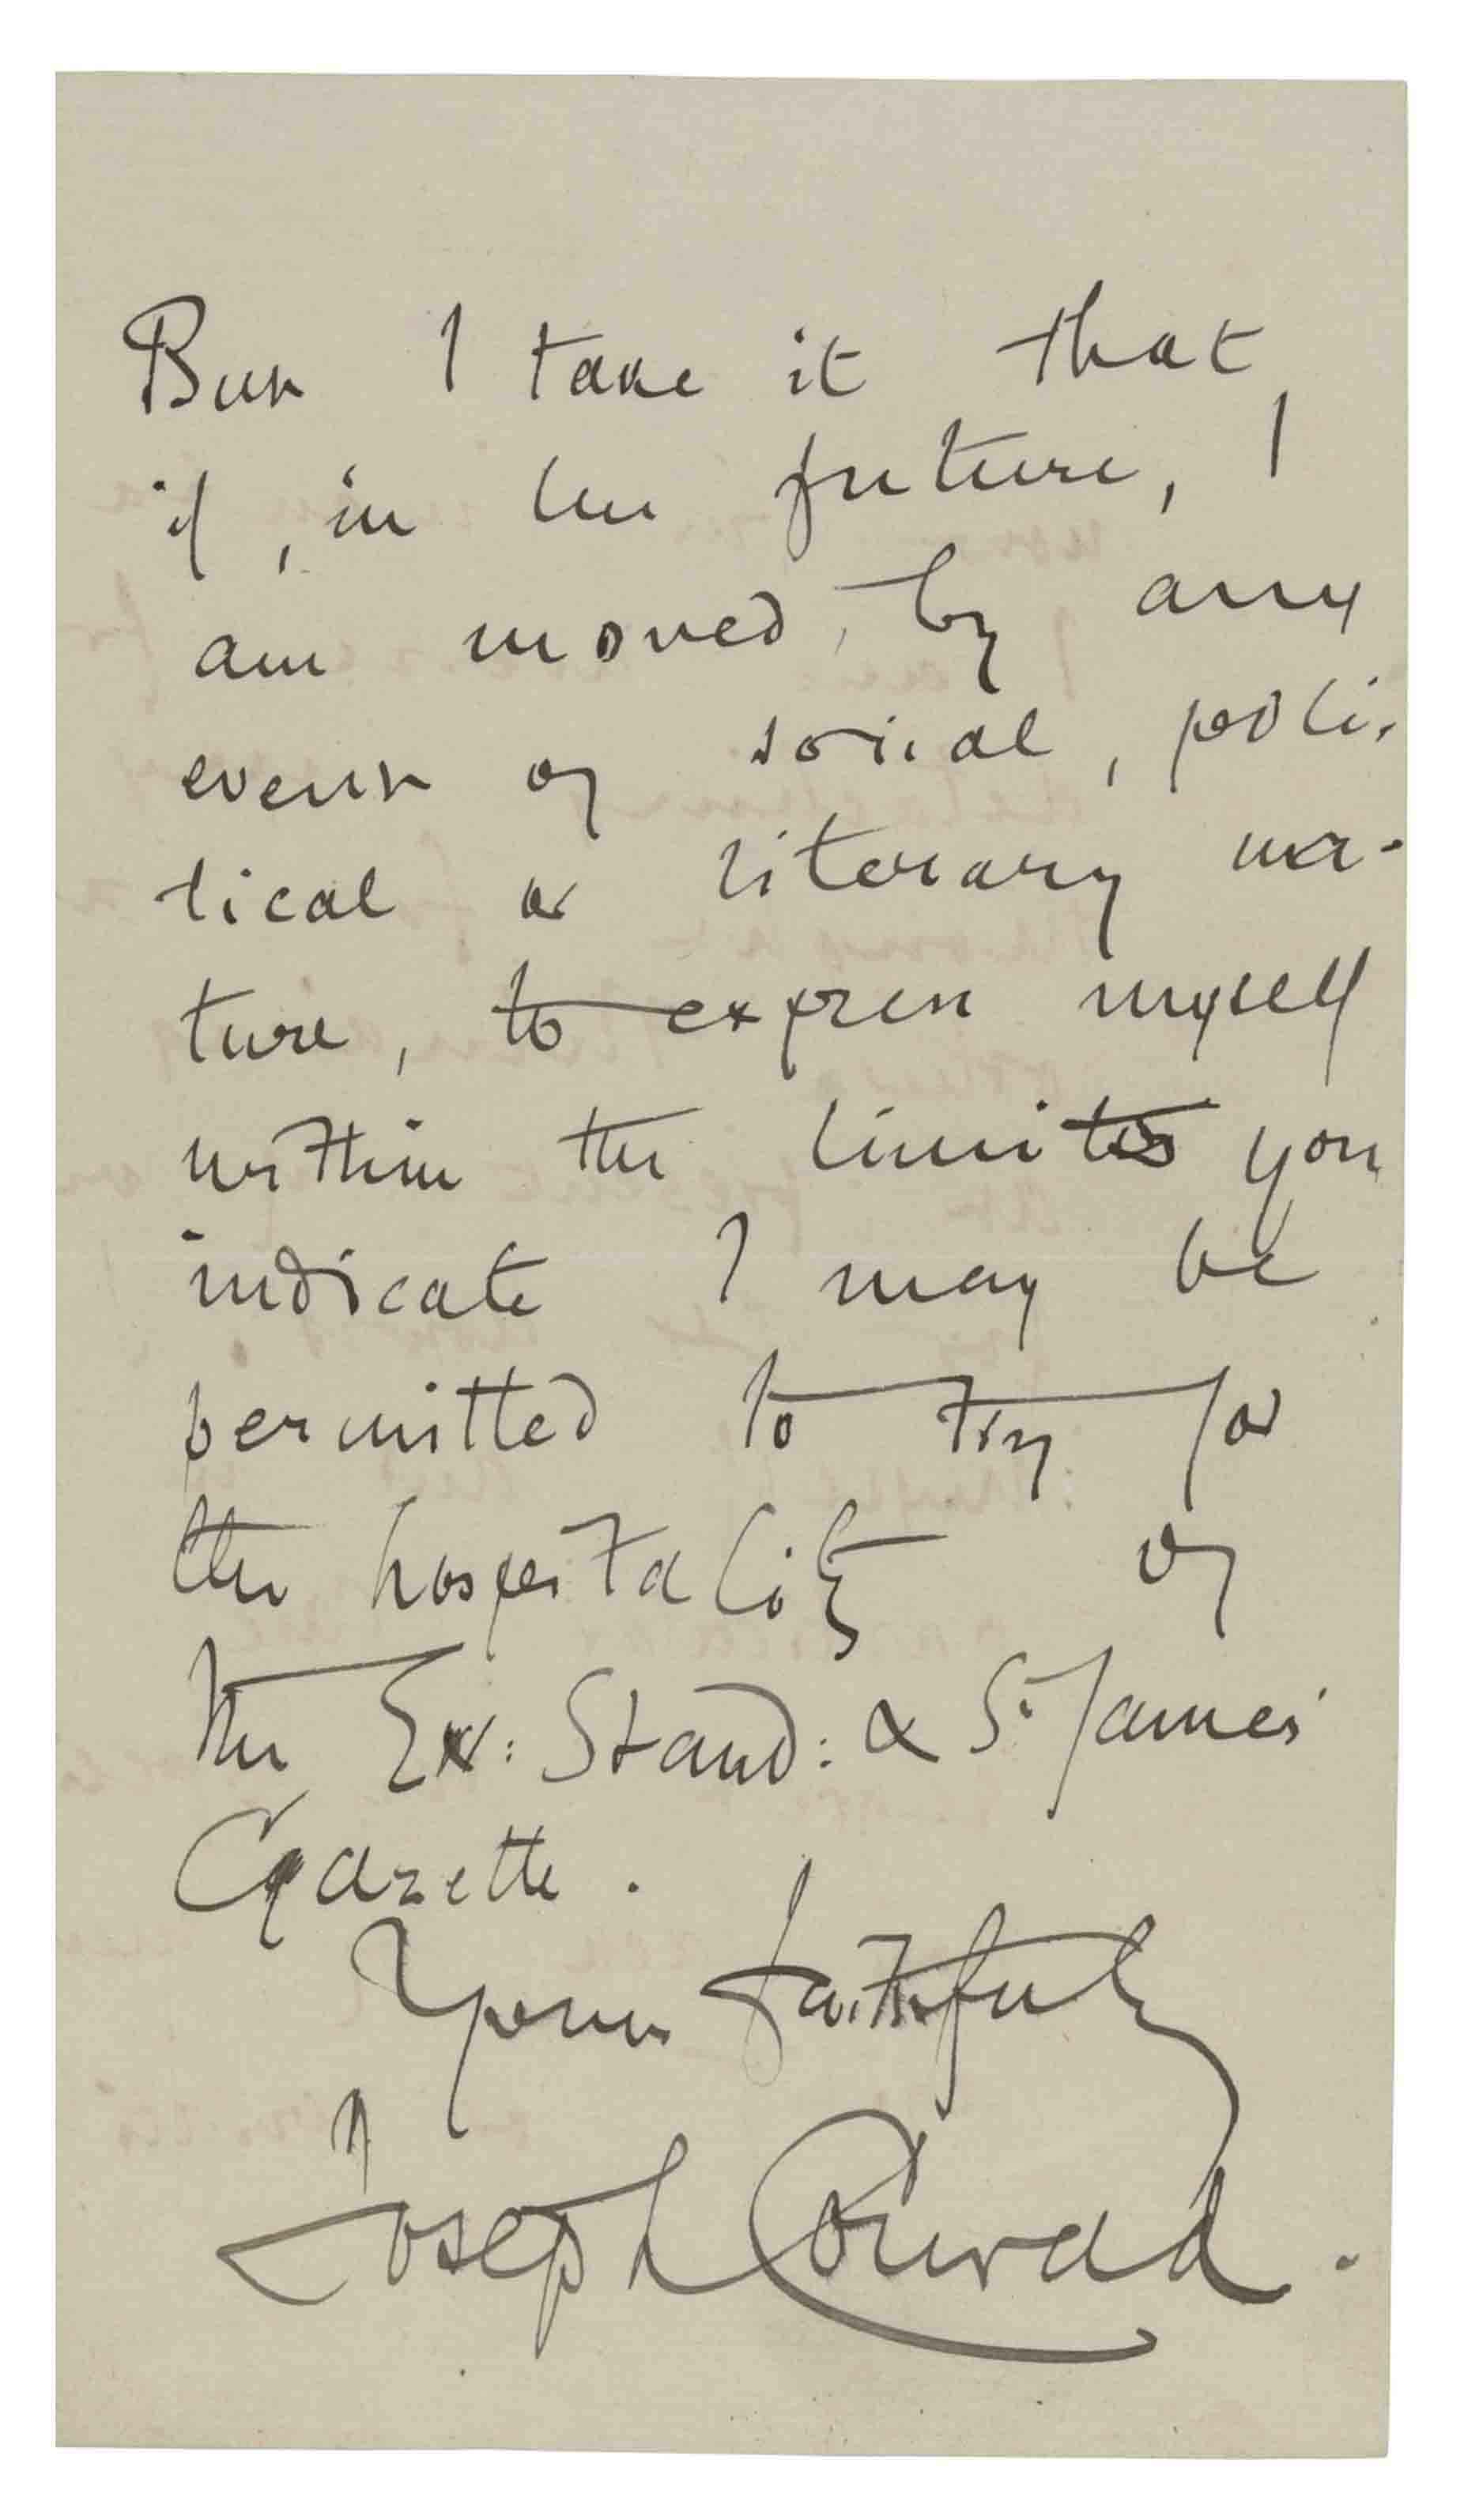 CONRAD, Joseph (1857-1924). Autograph letter signed ('Joseph Conrad') to [?Byron Curtis, editor of the Evening Standard & St James' Gazette], Capri, 8 March 1905, declining to write an article, 'my next novel being now in incubation I am averse from detaching my thought for any other thinking just at present ... I know myself, and in this particular case I regret very specially my lack of mental agility', but promising to comply if moved 'by any event of social, political or literary nature', 3 pages, 8vo.